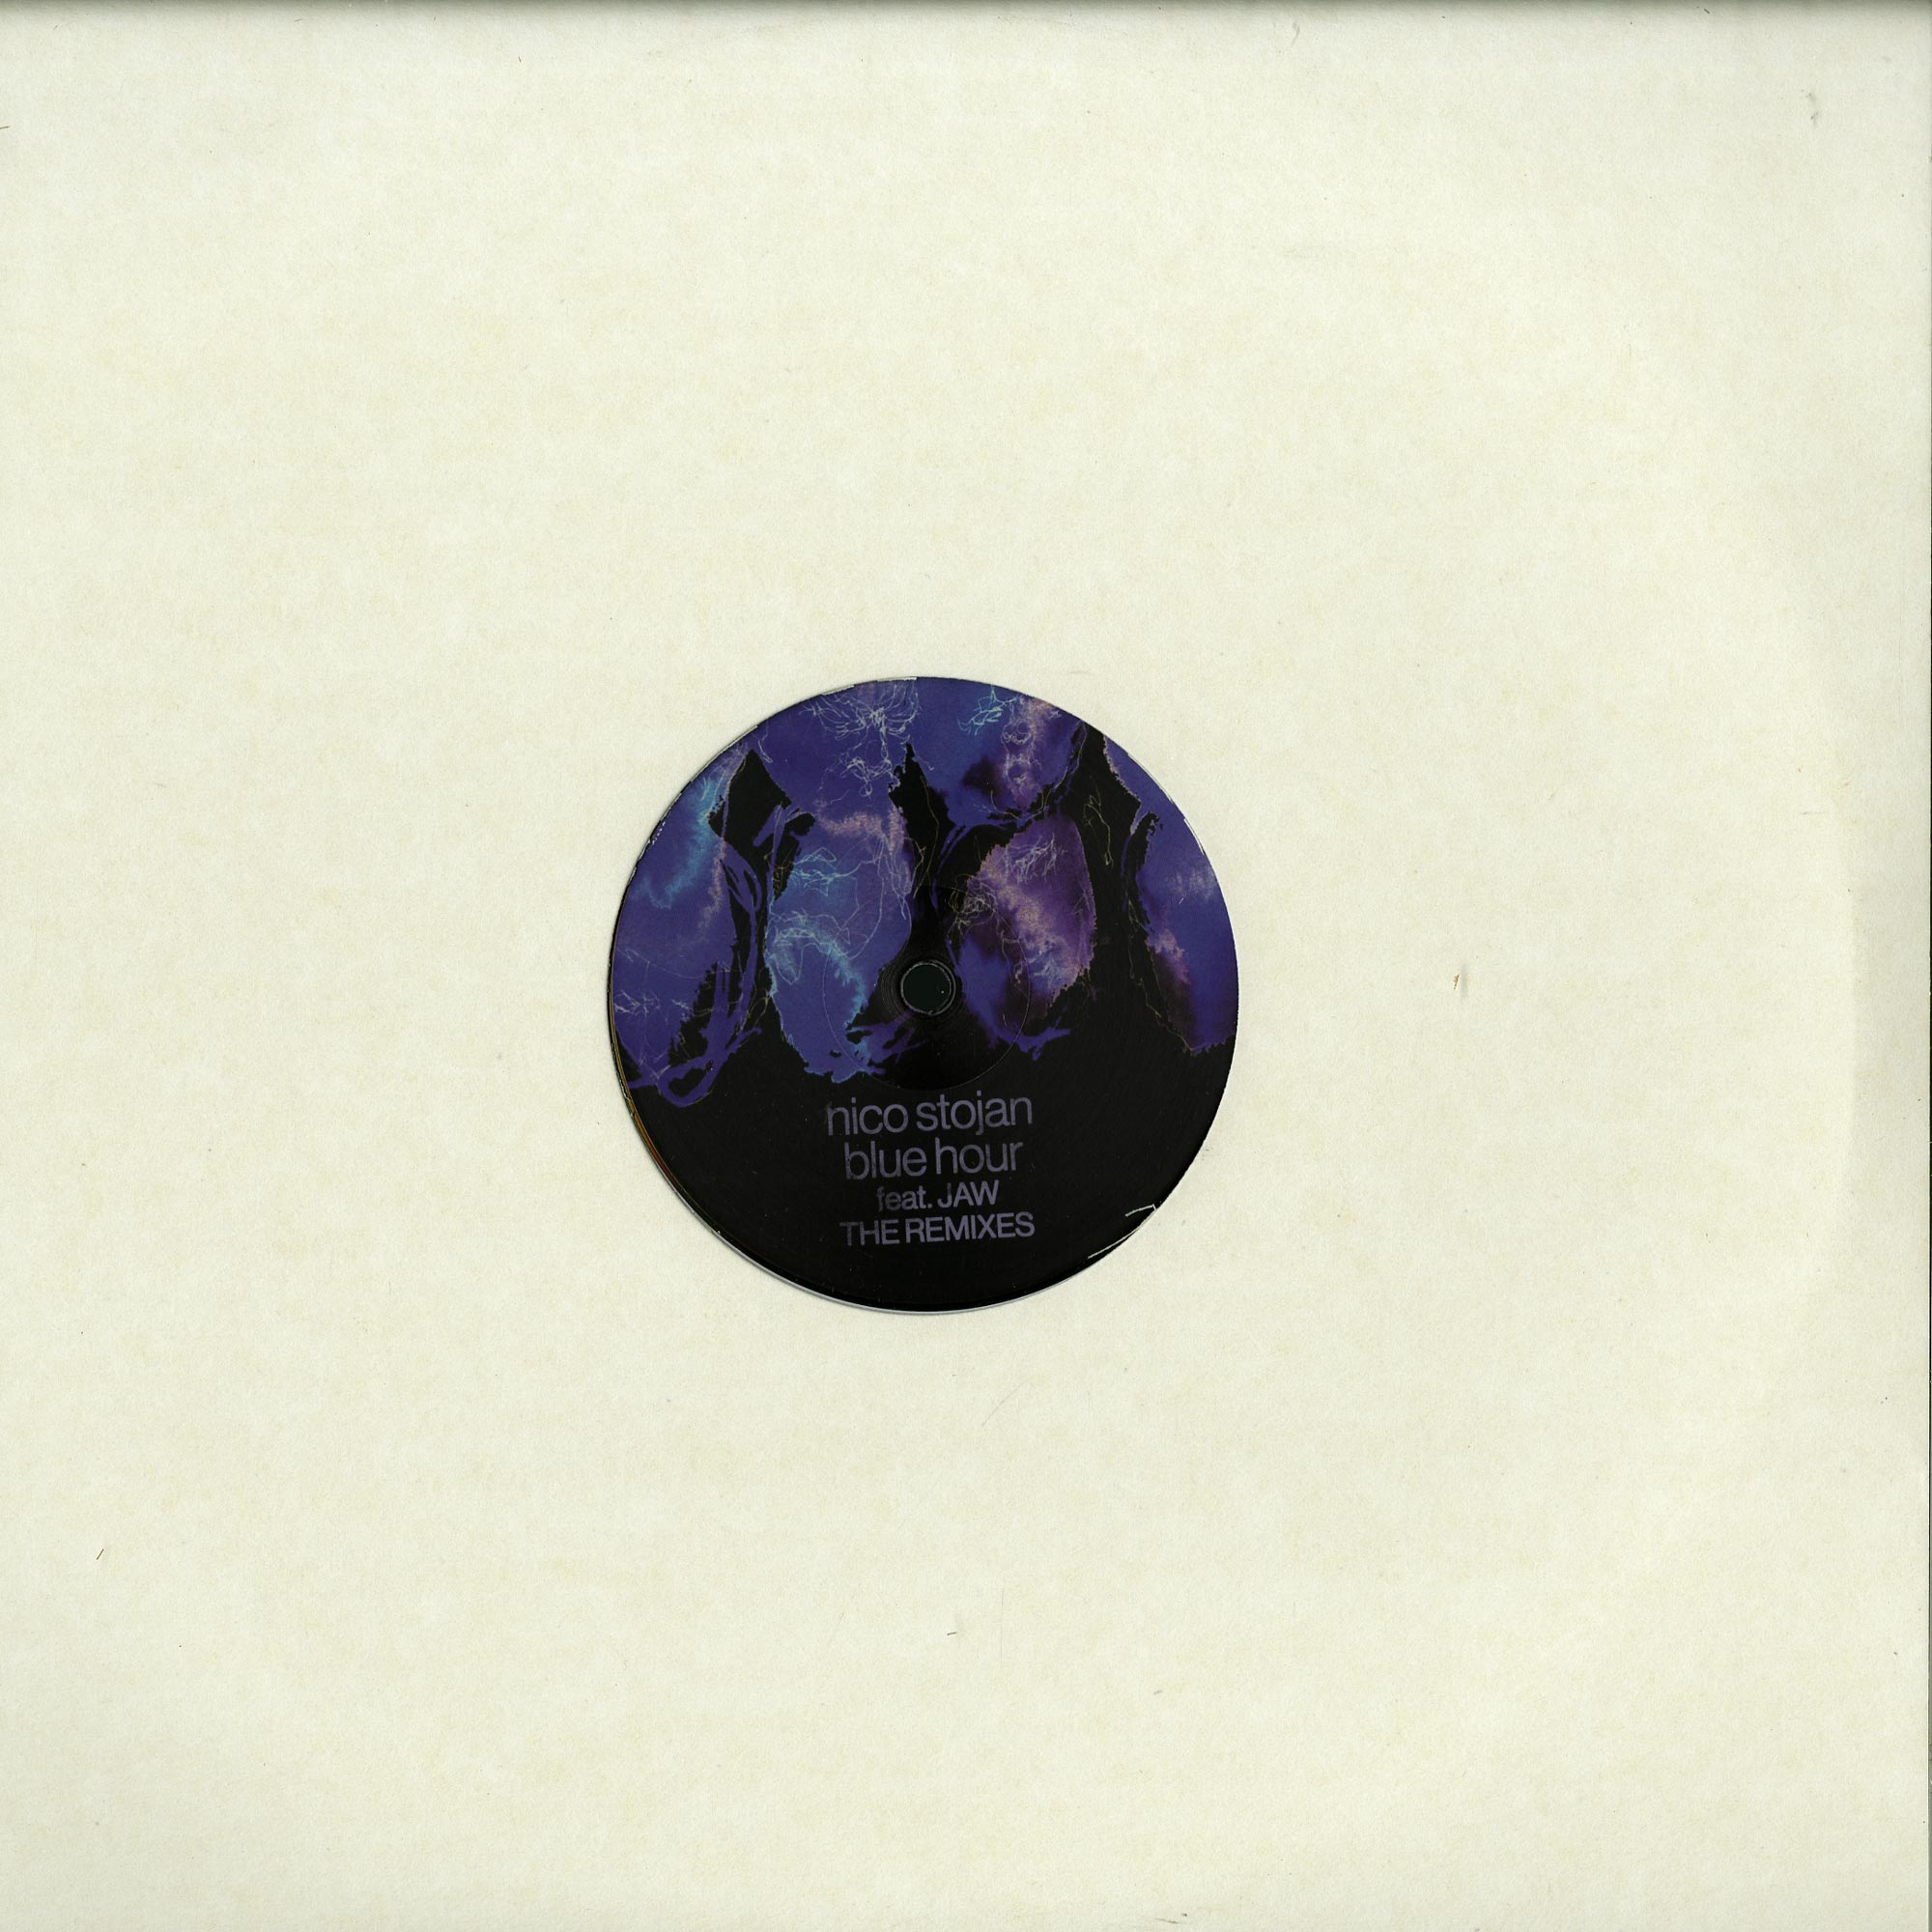 Nico Stojan - BLUE HOUR FEAT JAW - THE REMIXES EP